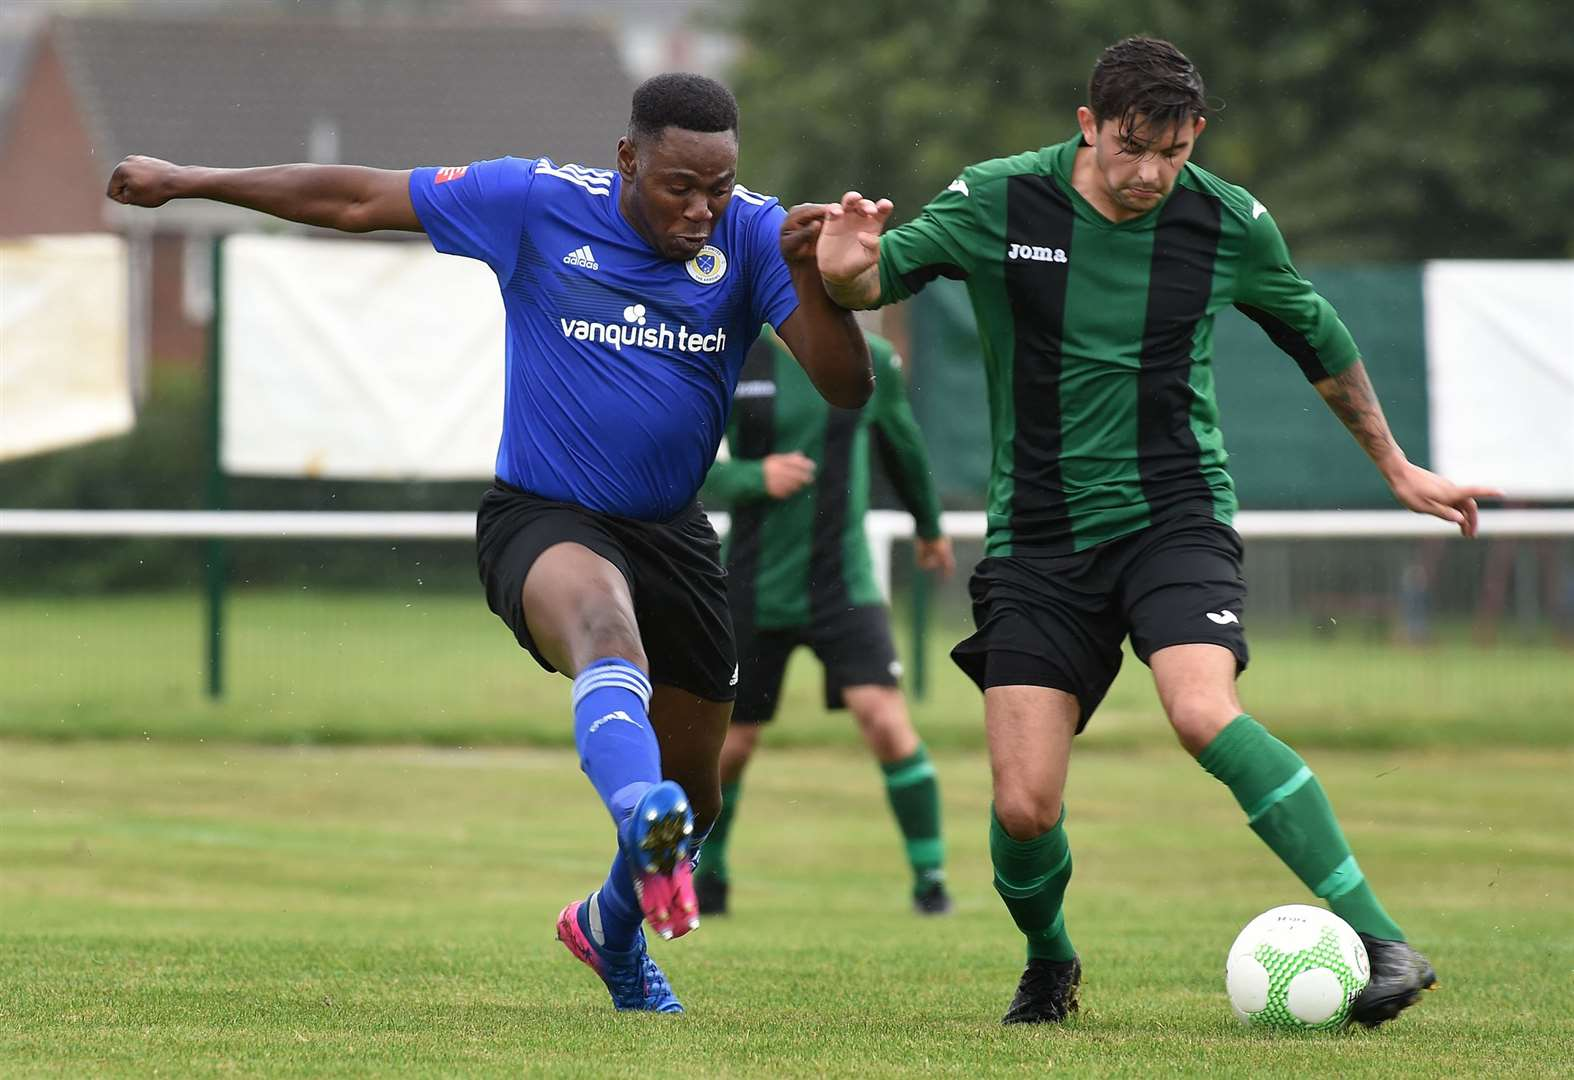 Arrows hit the target in FA Vase opener